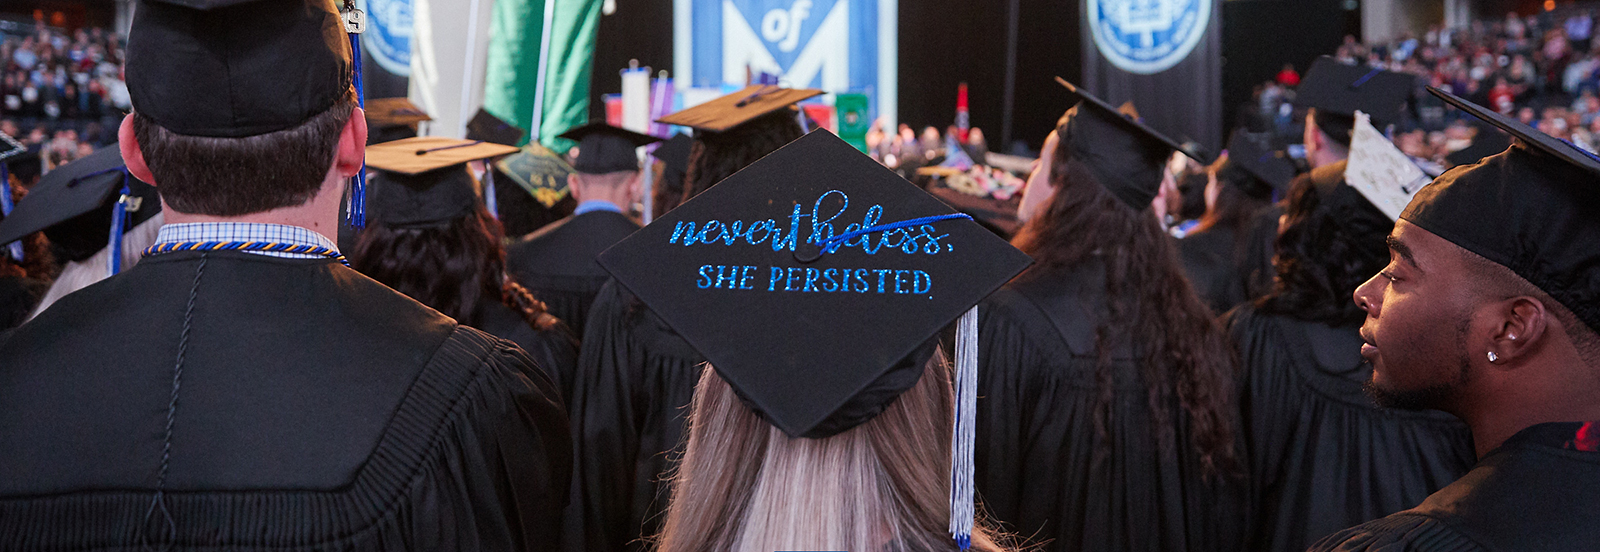 """female graduate with morter board that says """"nevertheless, she persisted"""""""